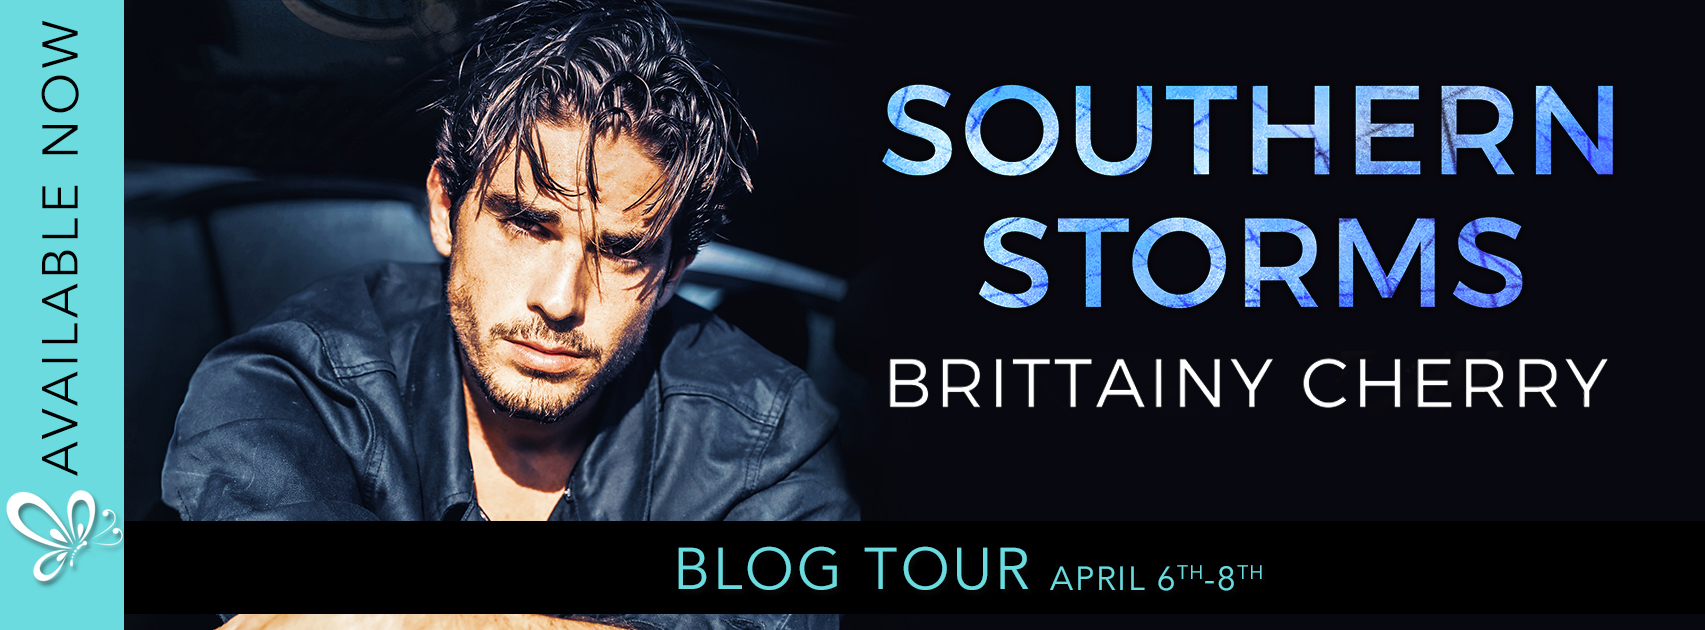 Blog Tour & Review: Southern Storms by Brittainy C. Cherry